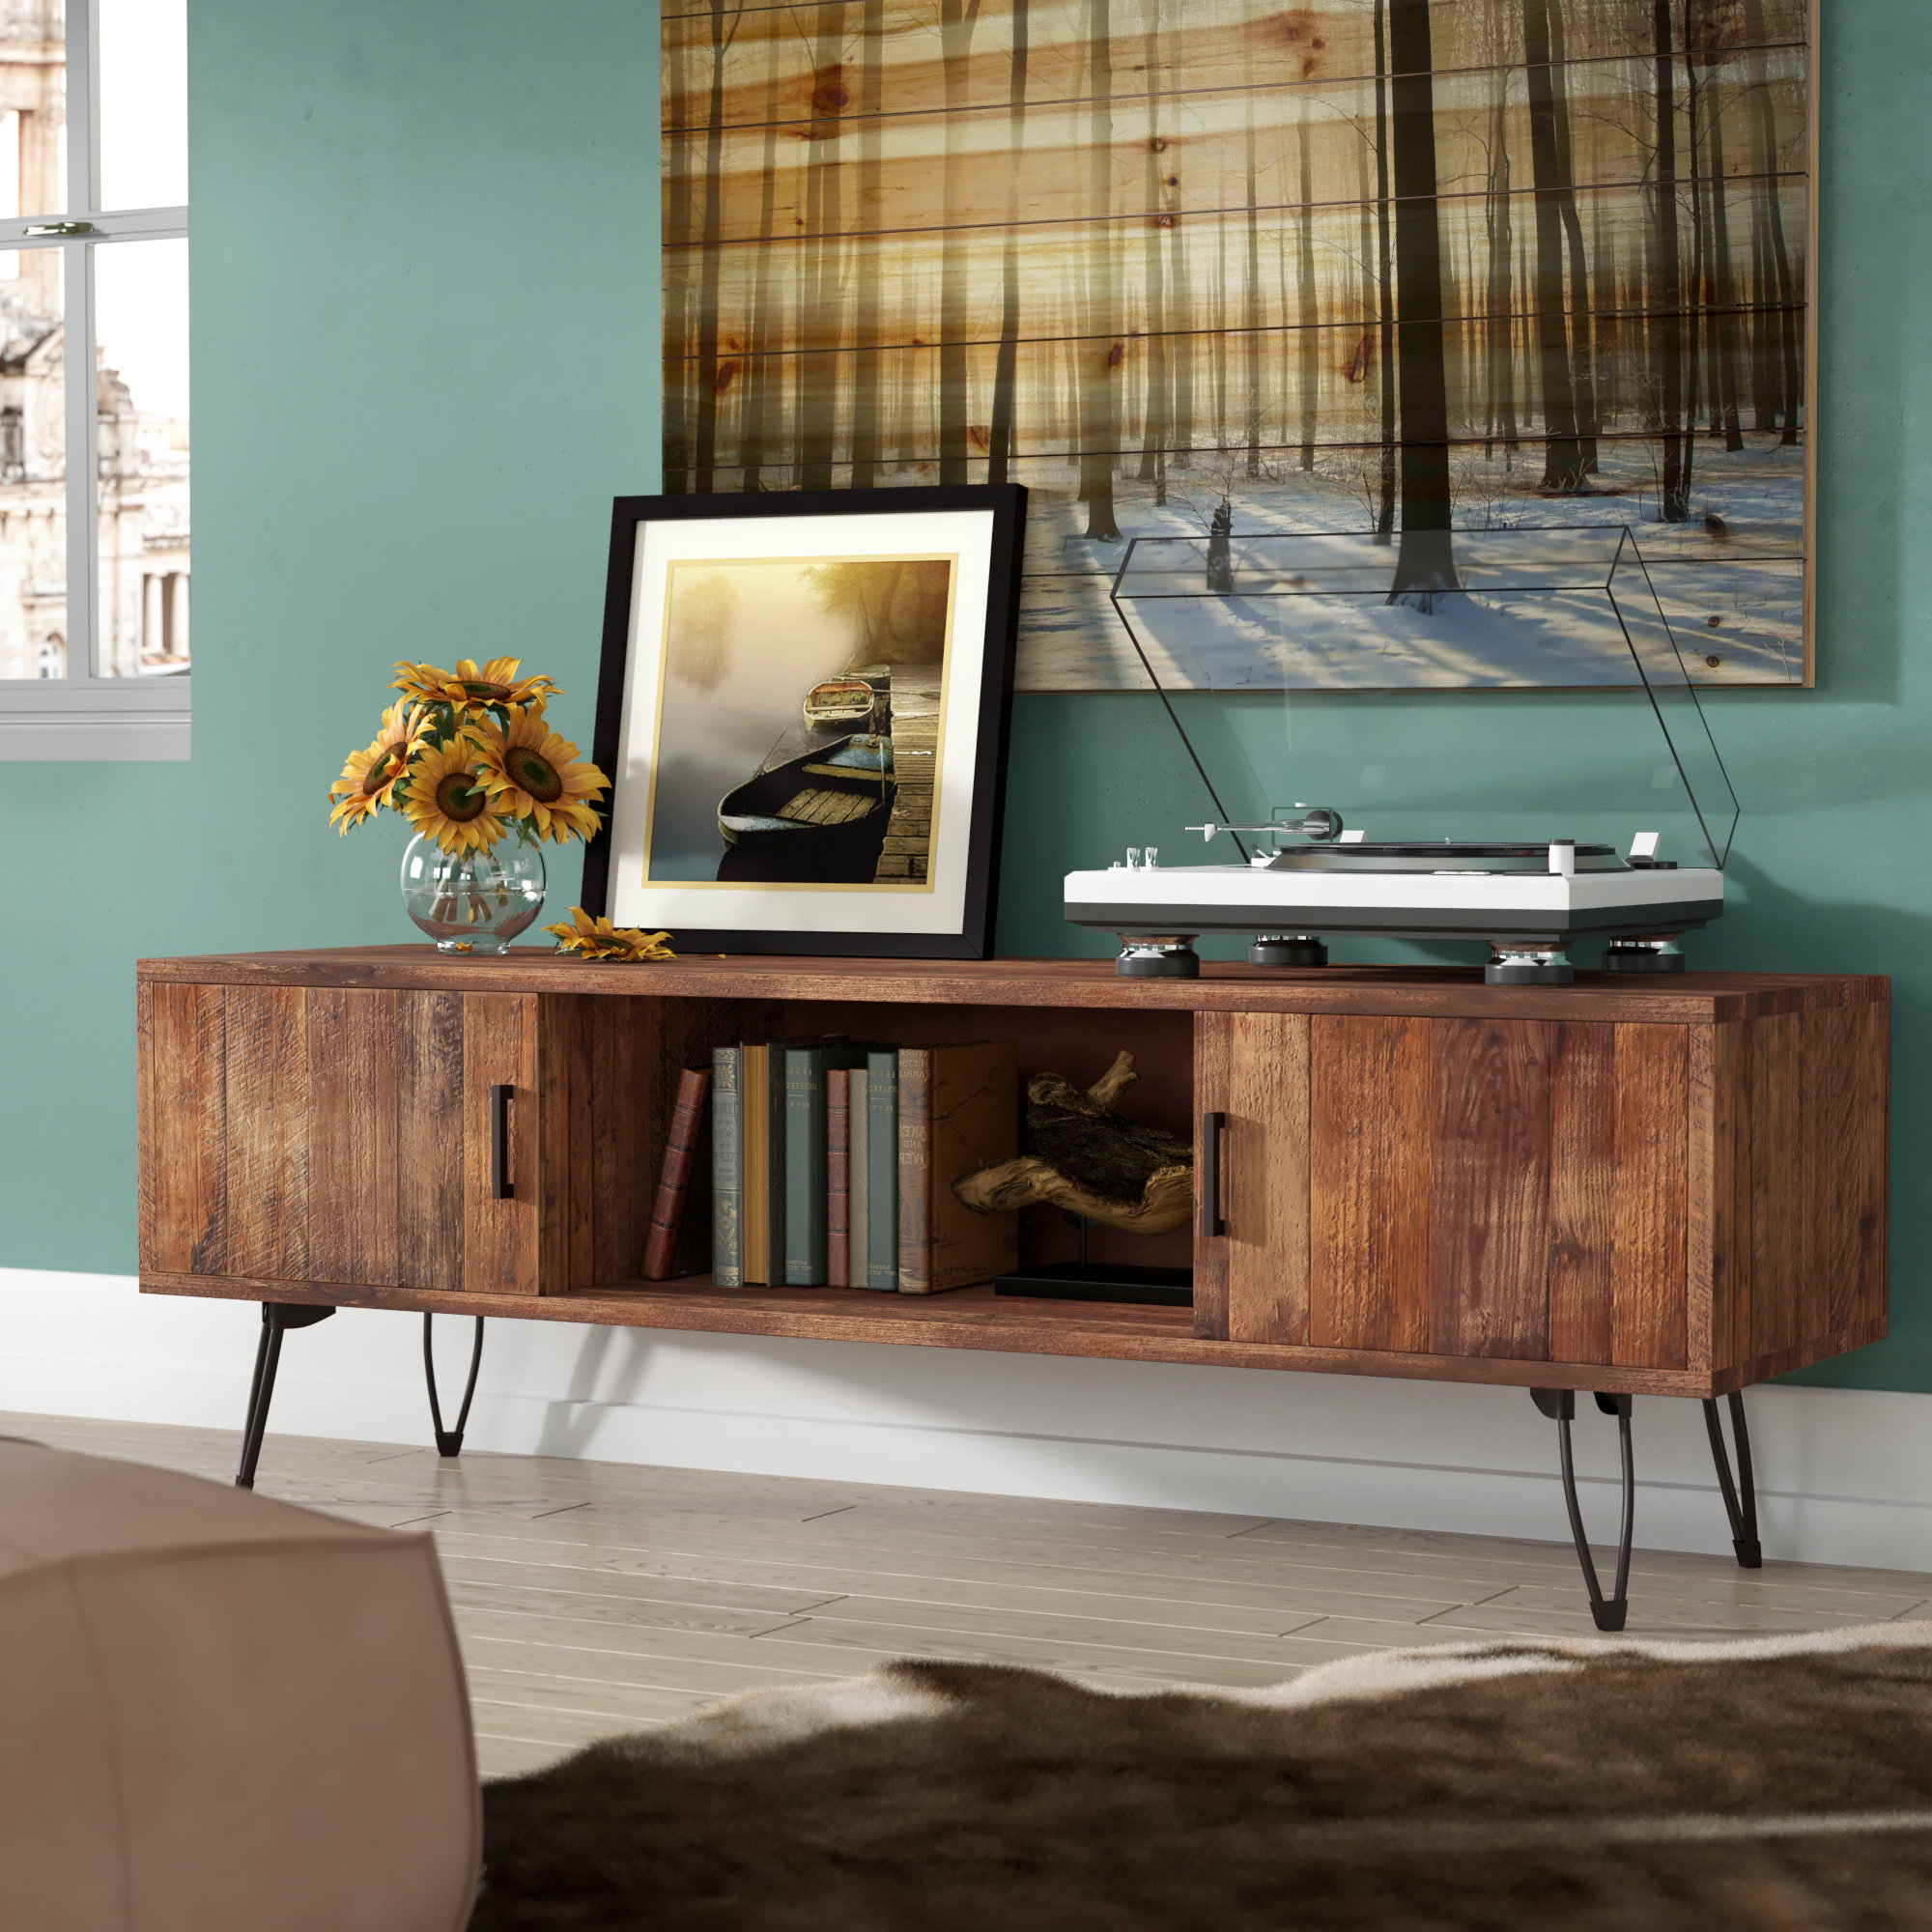 Solid Wood Tv Stands & Entertainment Centers You'll Love | Wayfair Inside Walters Media Console Tables (Gallery 8 of 20)